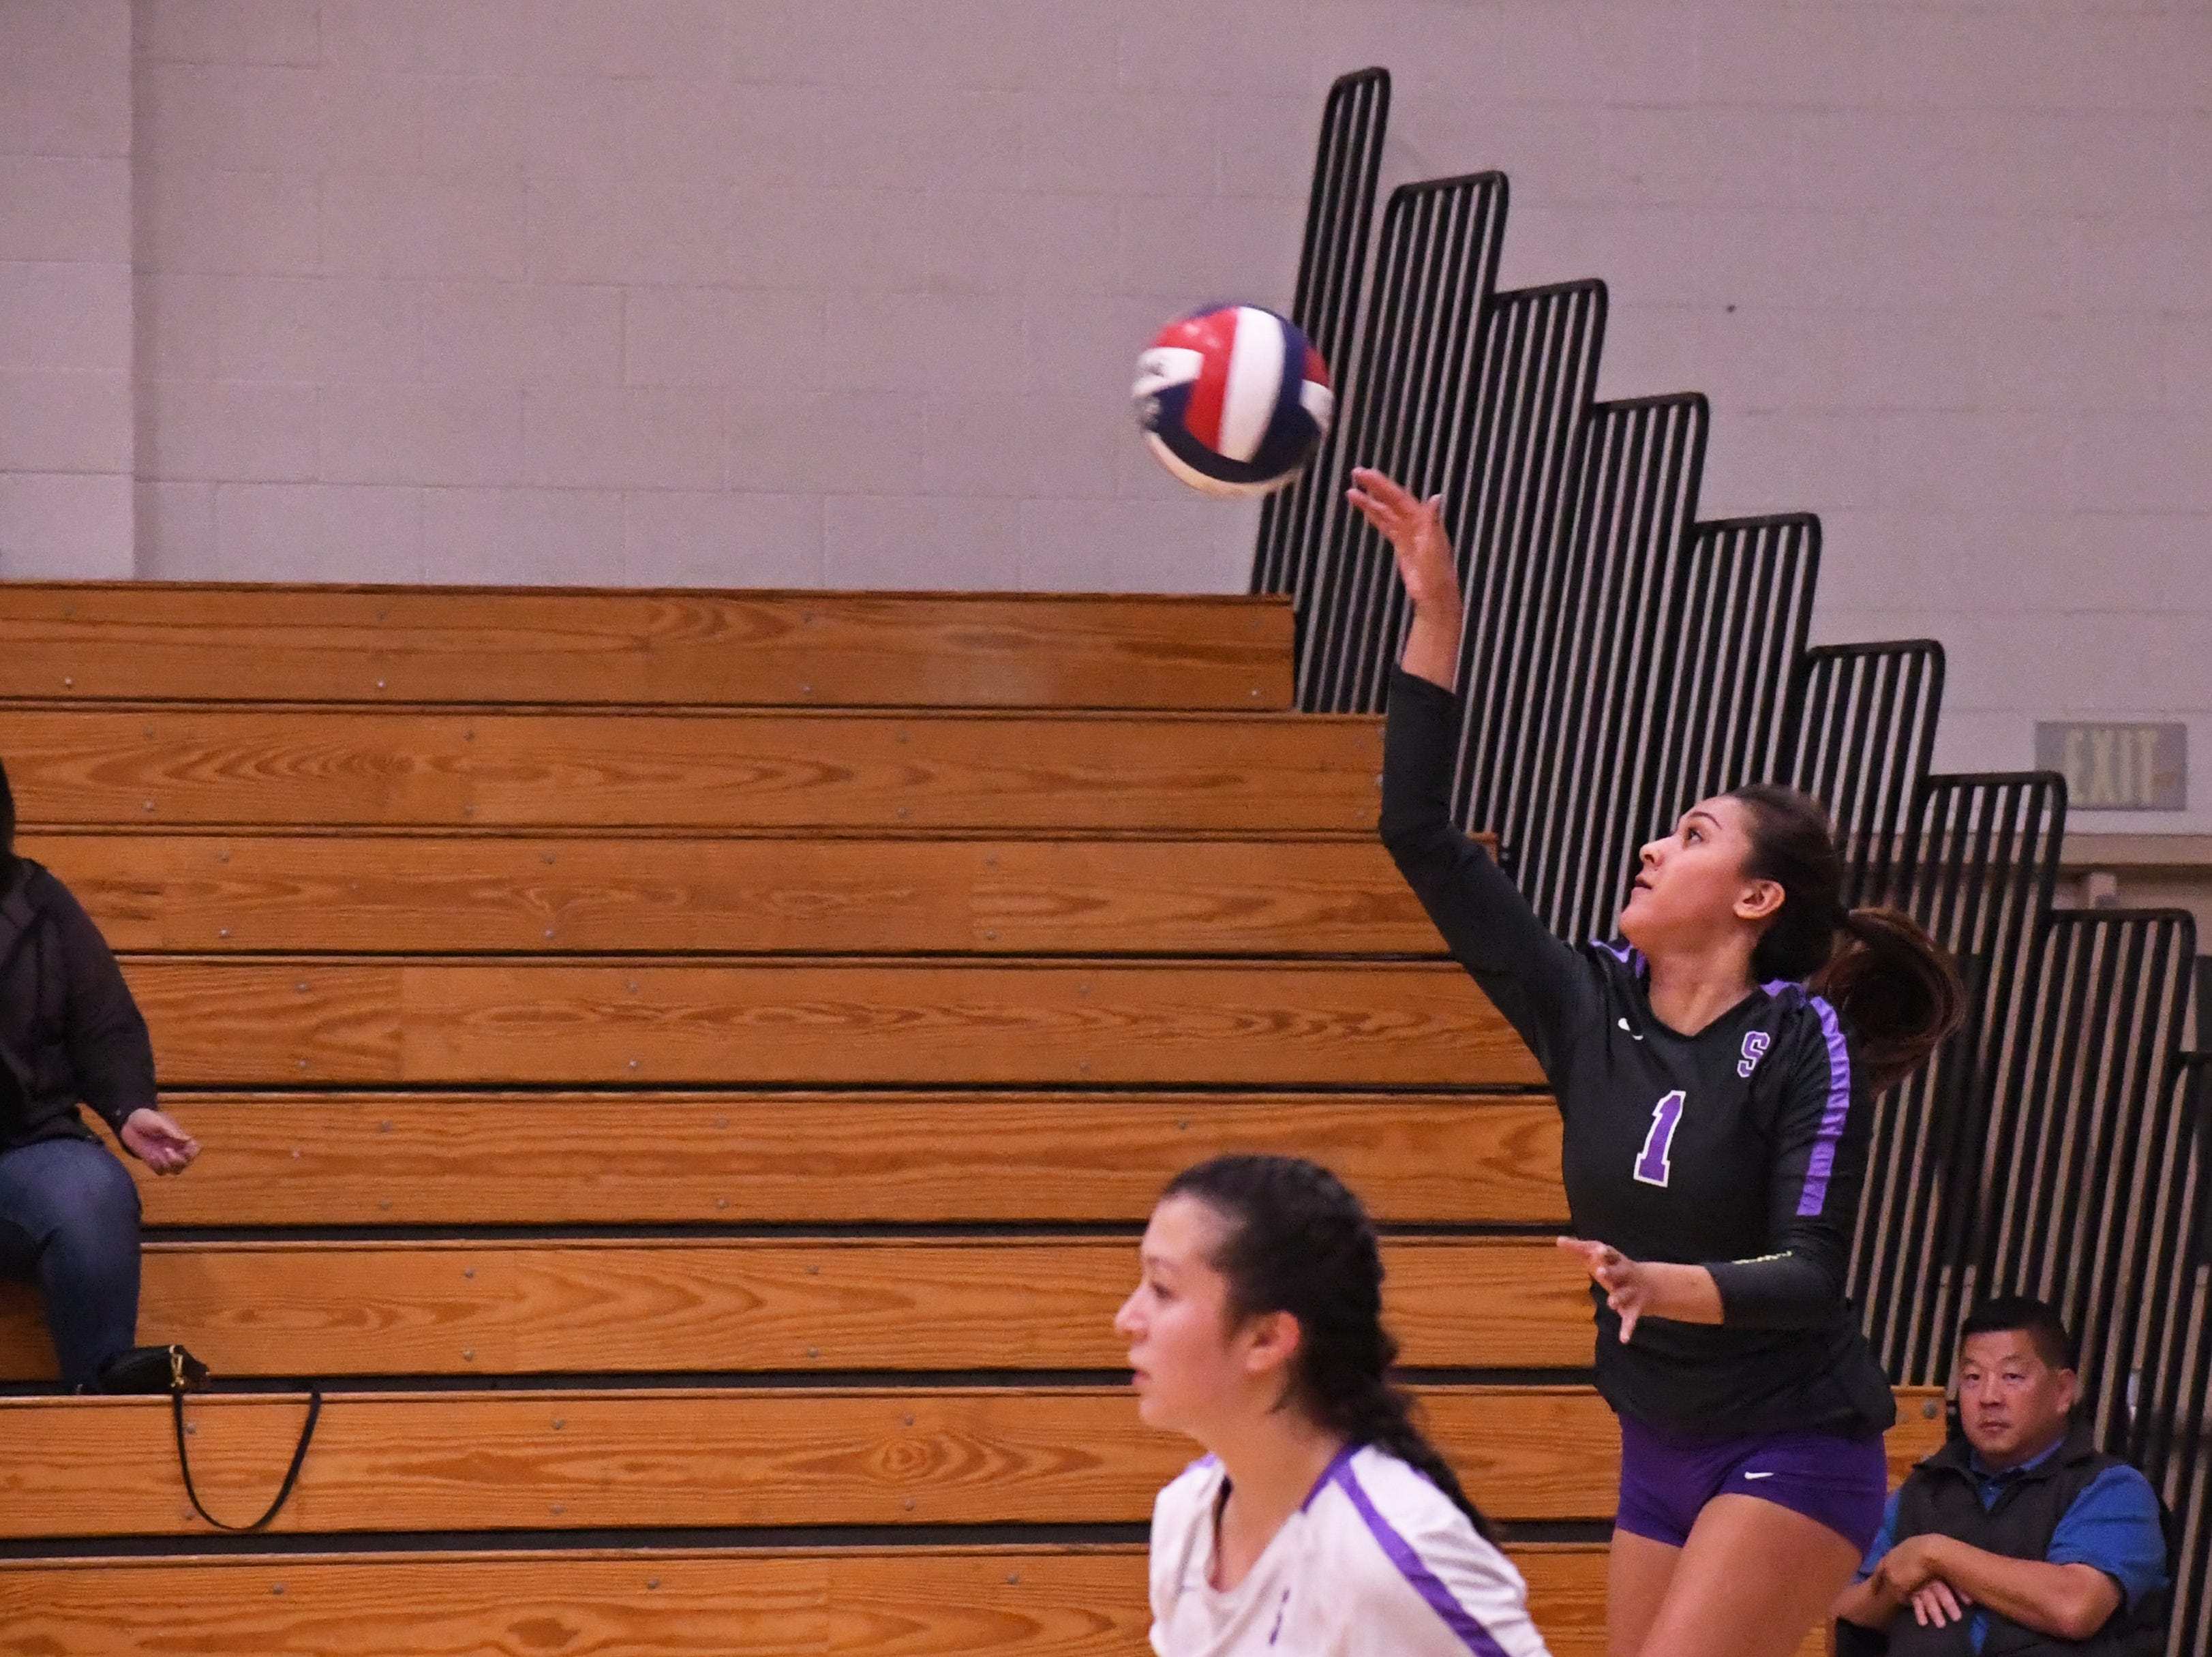 Right side hitter Aloha Delk (1) hits a serve in the first set.